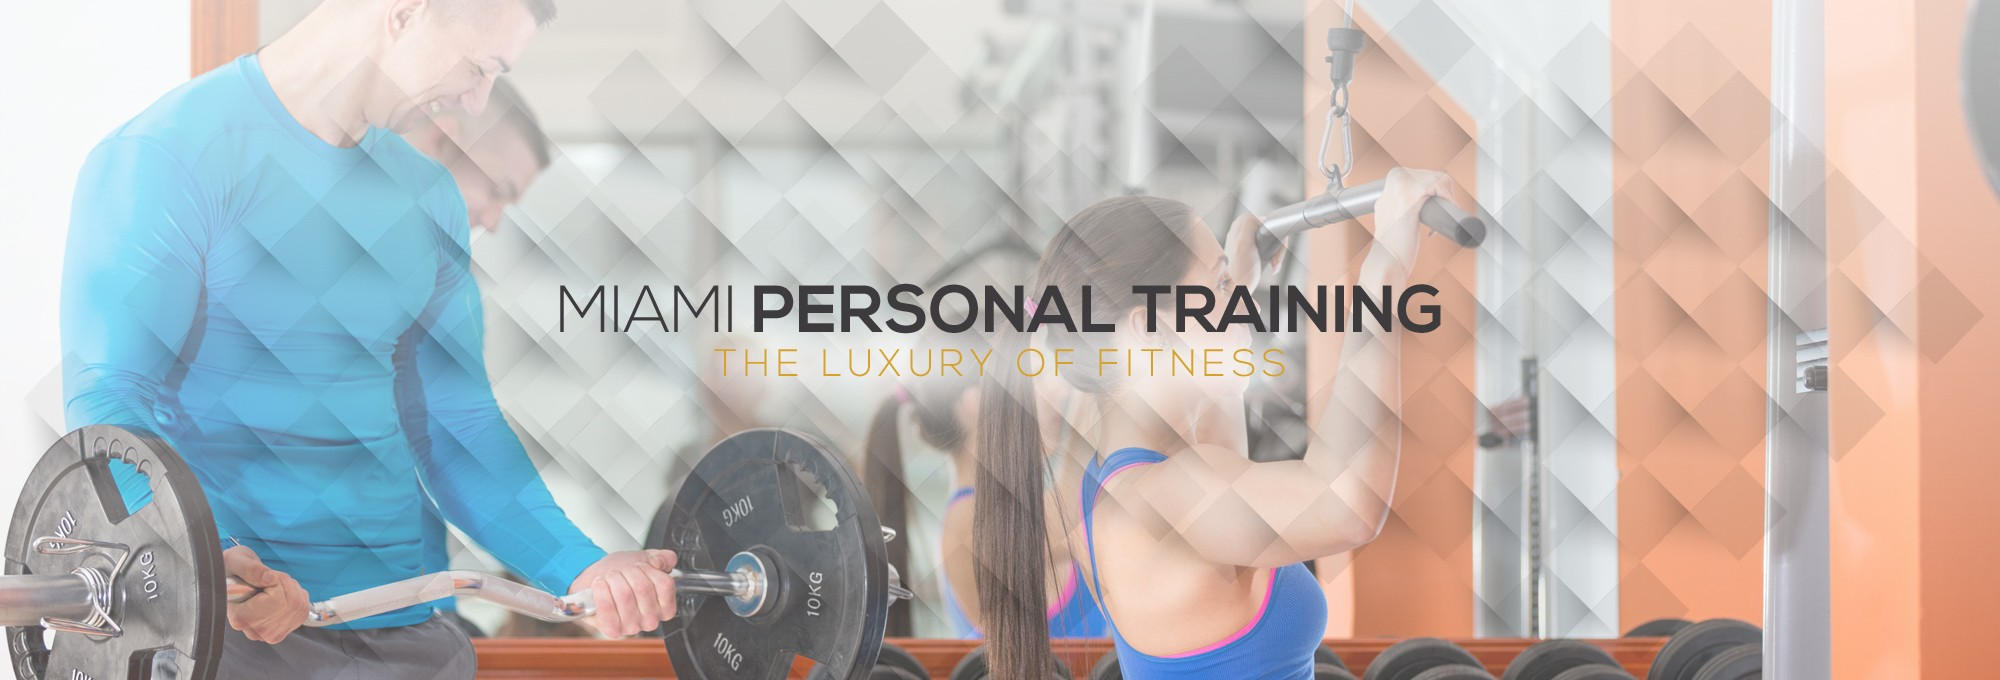 Luxury fitness training programs designed just for you!